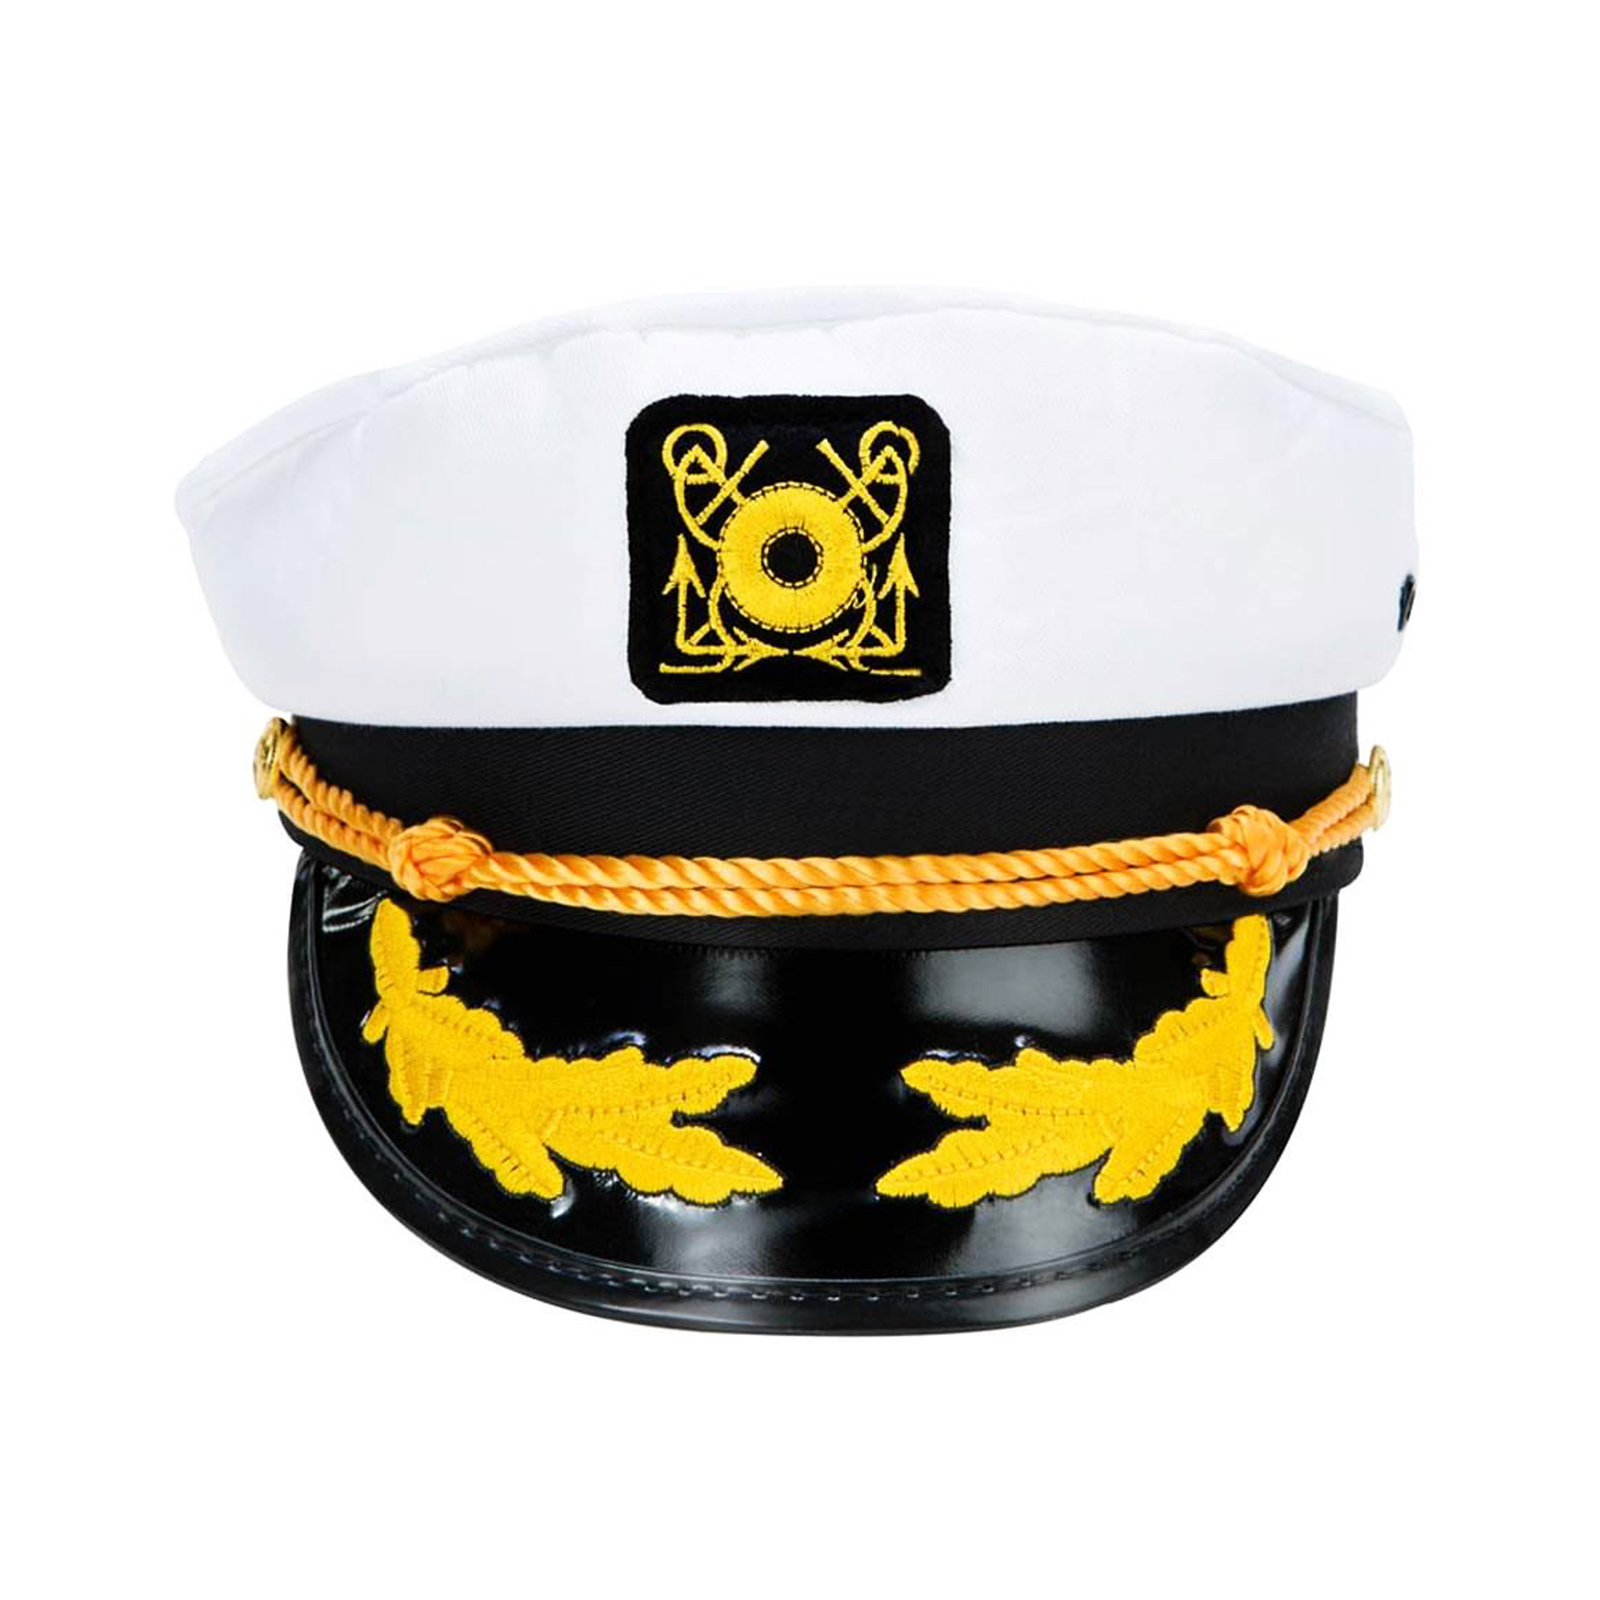 43b57fd00bd47 Details about Snapback Sailor Yacht Captain Hat Boat Halloween Theme  Costume Hat LOT